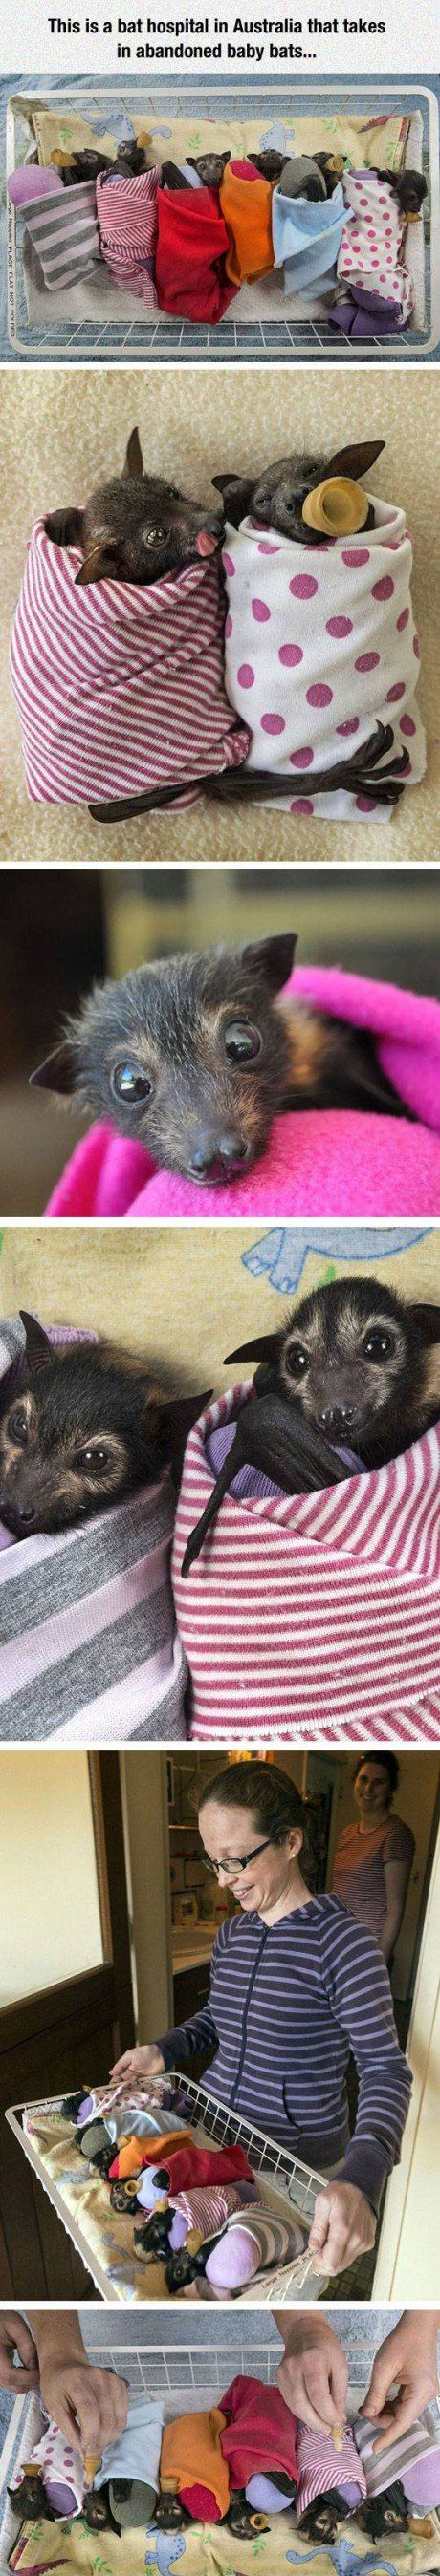 Animal hospital in Australia that takes in abandoned baby bats